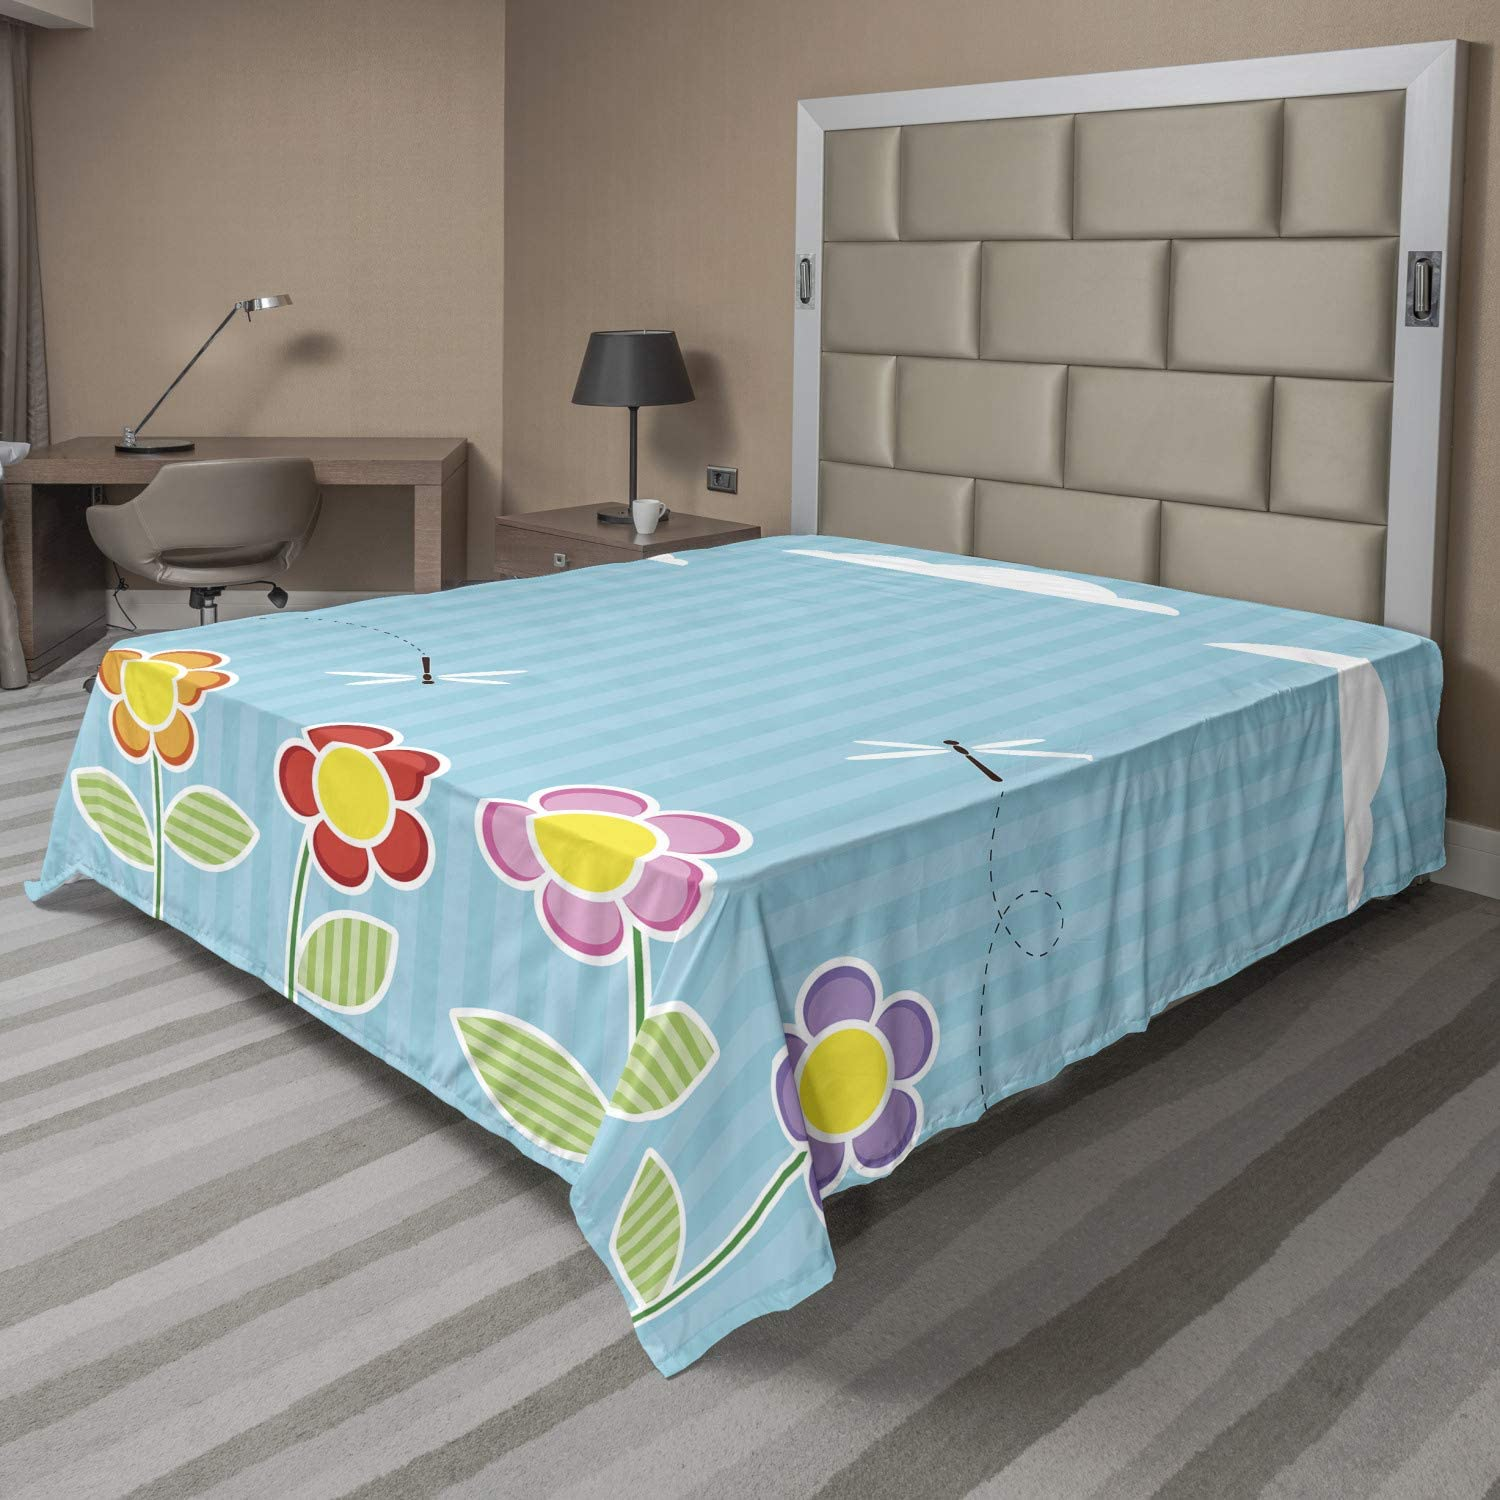 Ambesonne Dragonfly Flat Sheet Playroom Daisy Girls Floral Tucson Mall Bloo Max 52% OFF